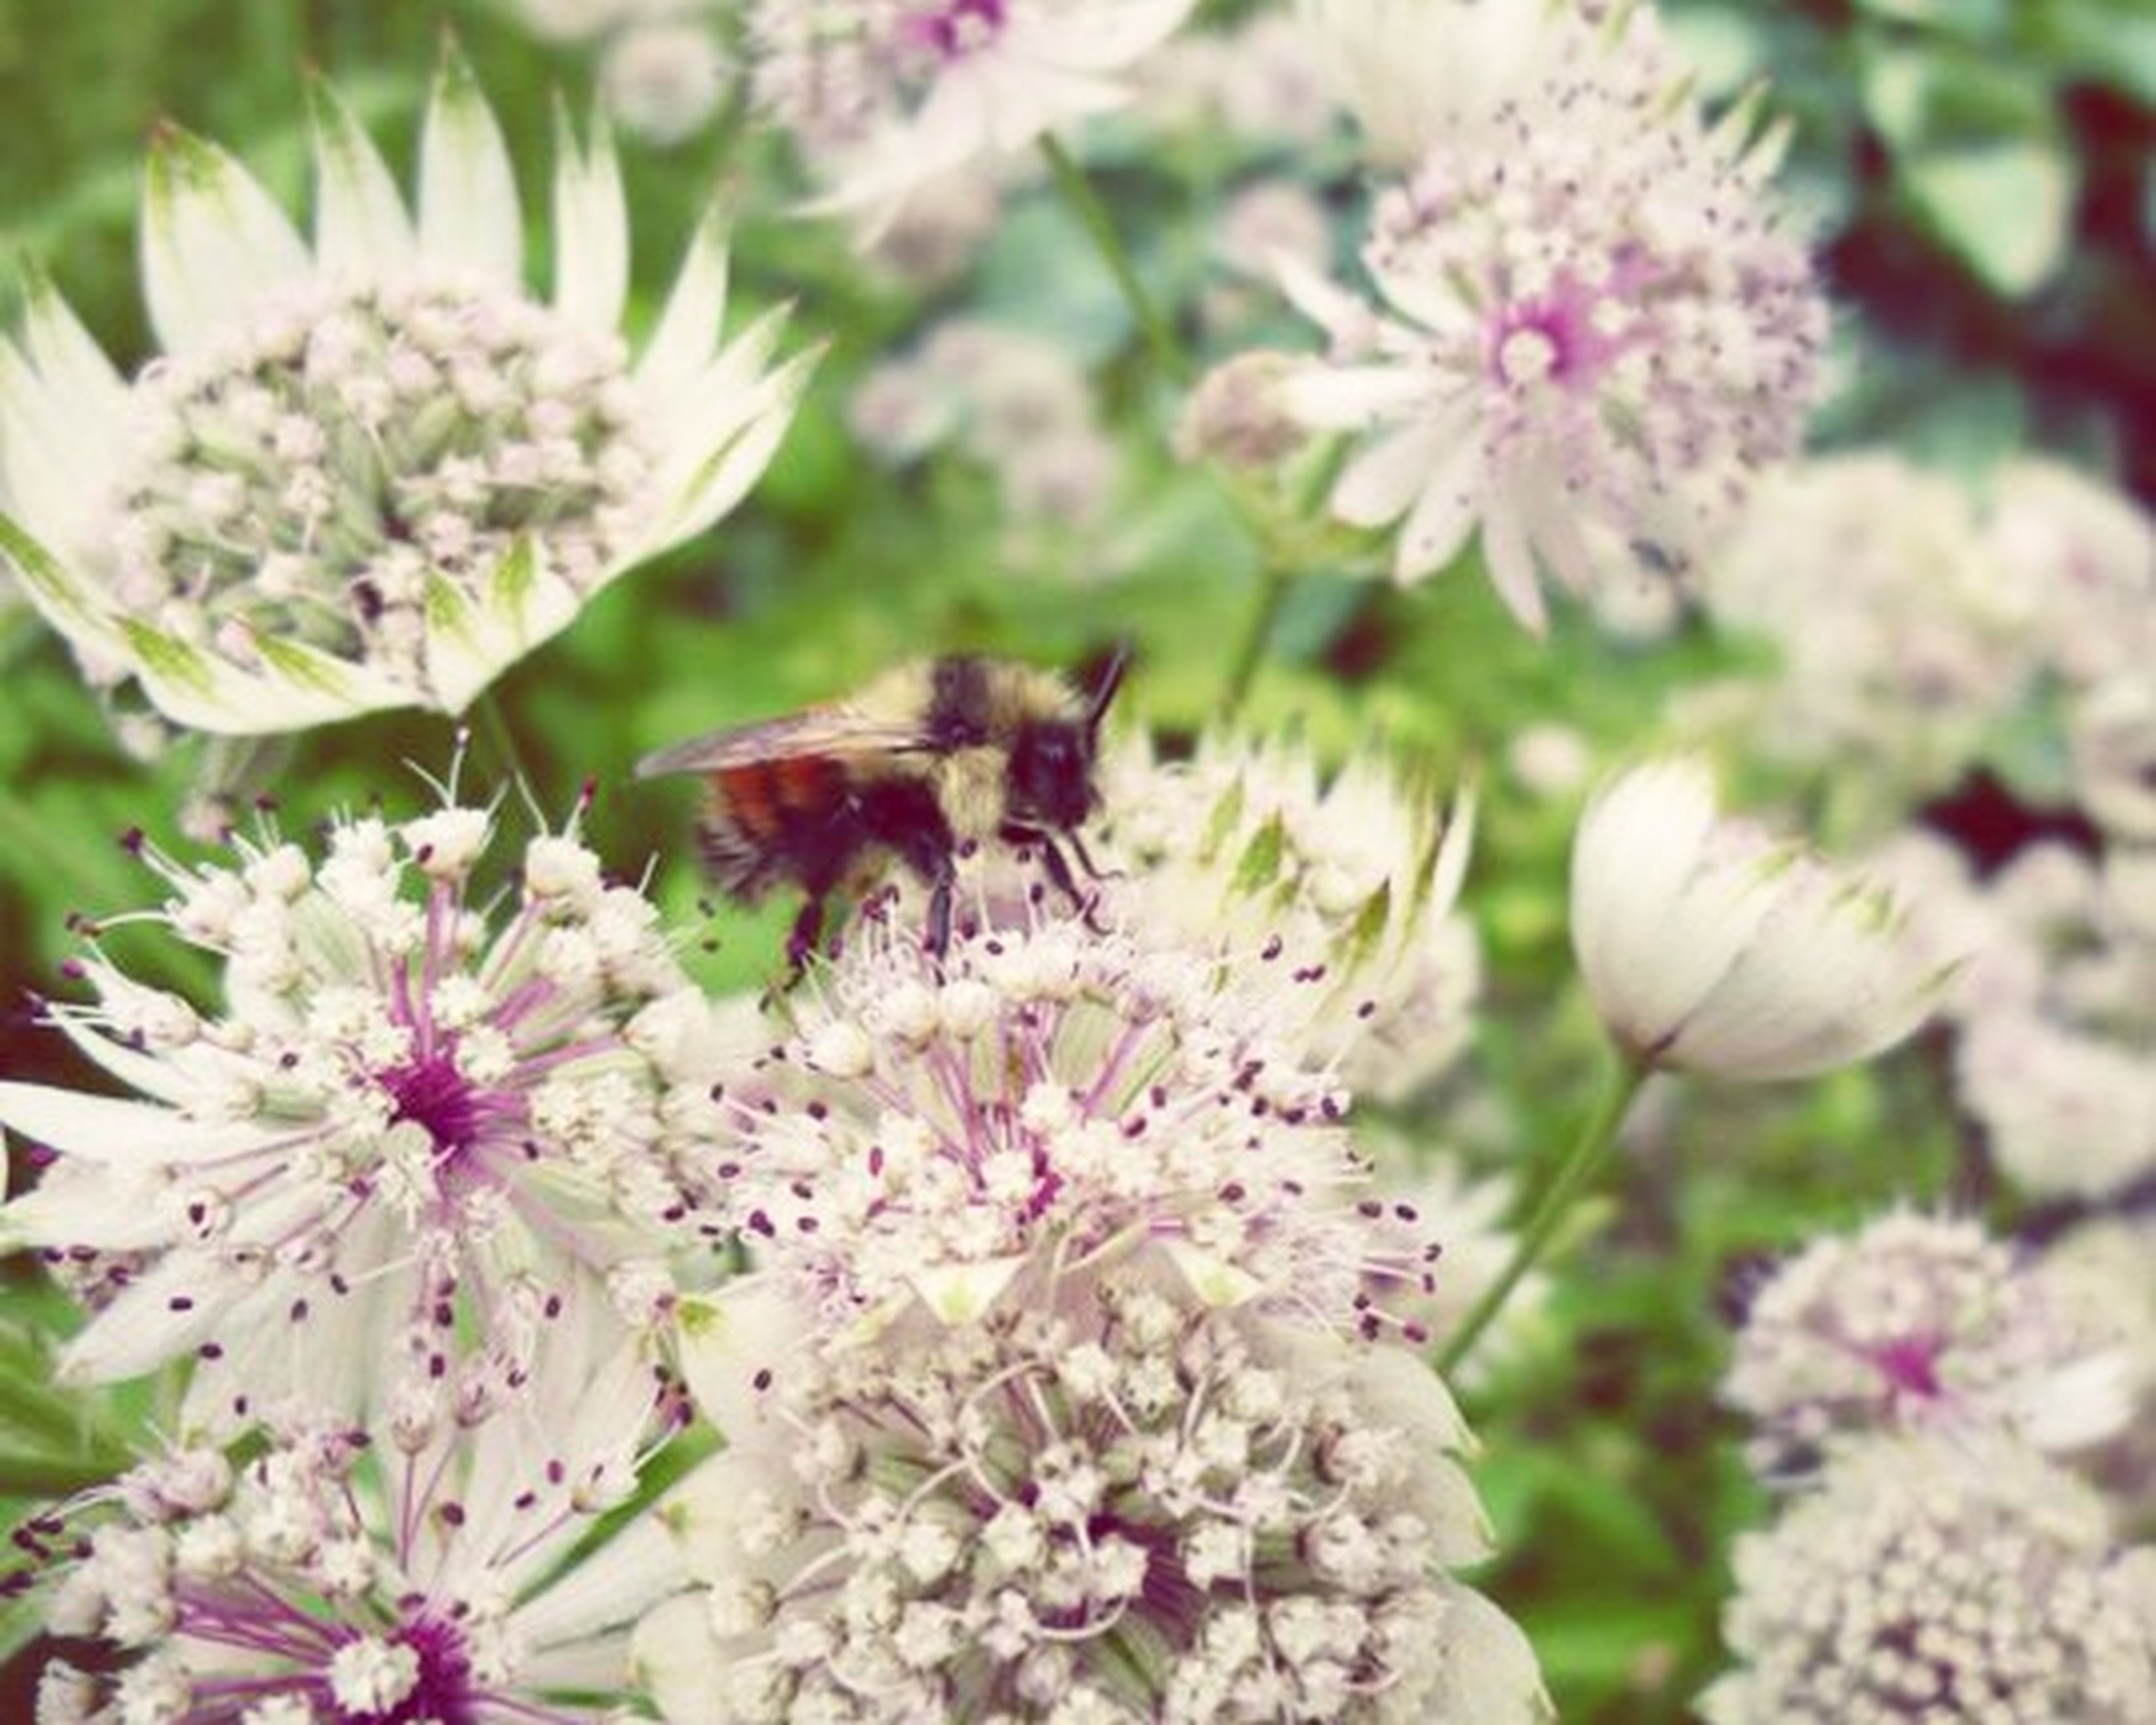 flower, freshness, fragility, petal, beauty in nature, growth, flower head, nature, animals in the wild, insect, close-up, animal themes, one animal, wildlife, focus on foreground, blooming, white color, blossom, in bloom, plant